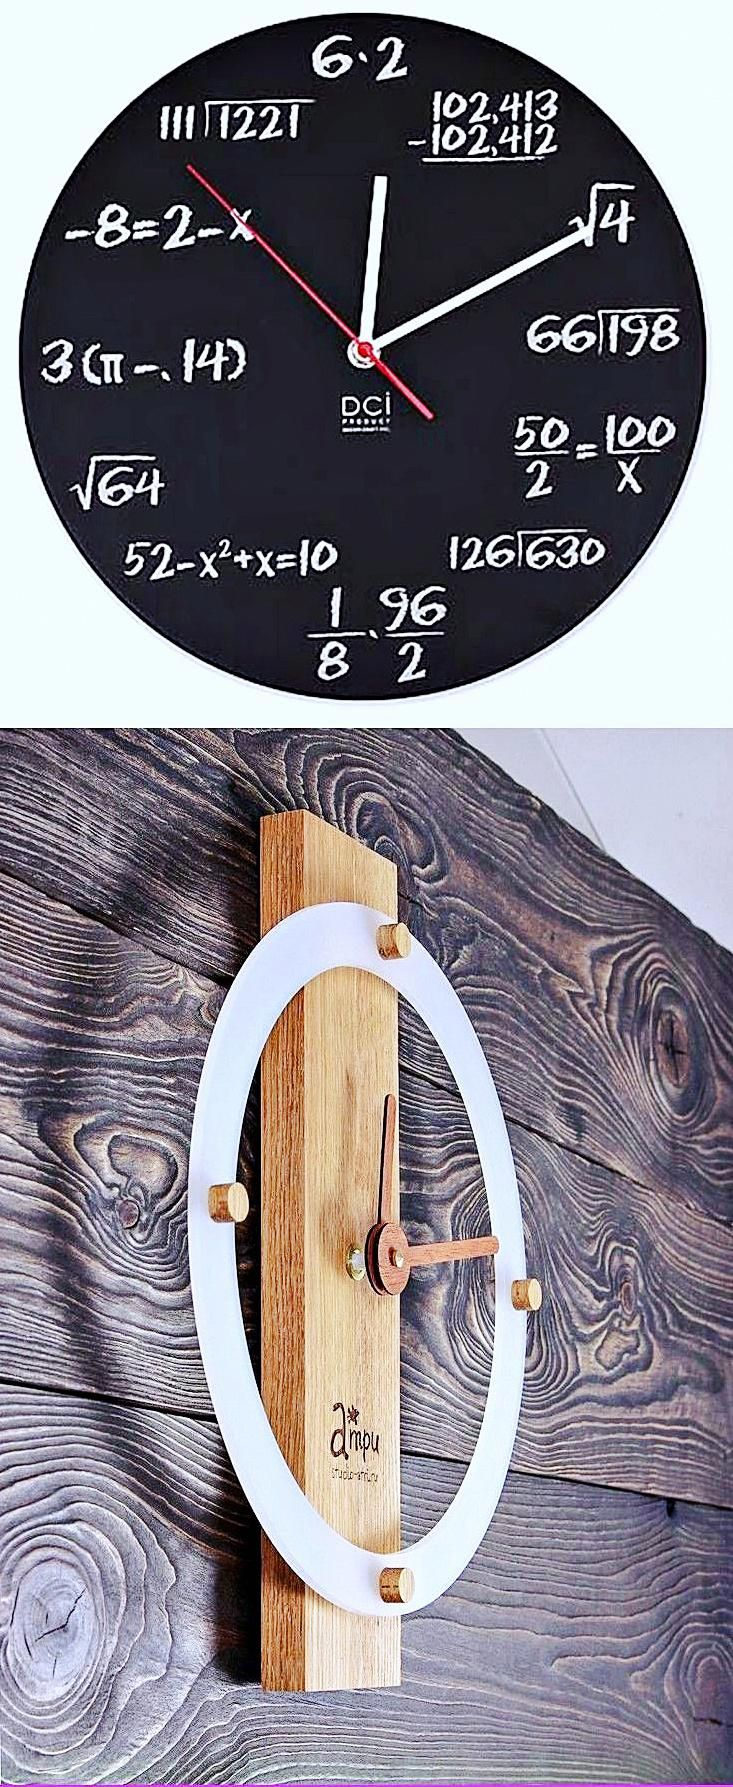 Large Rectangular Wall Clock Large Wooden Wall Clock Wall Clock Black Wall Clock Clock